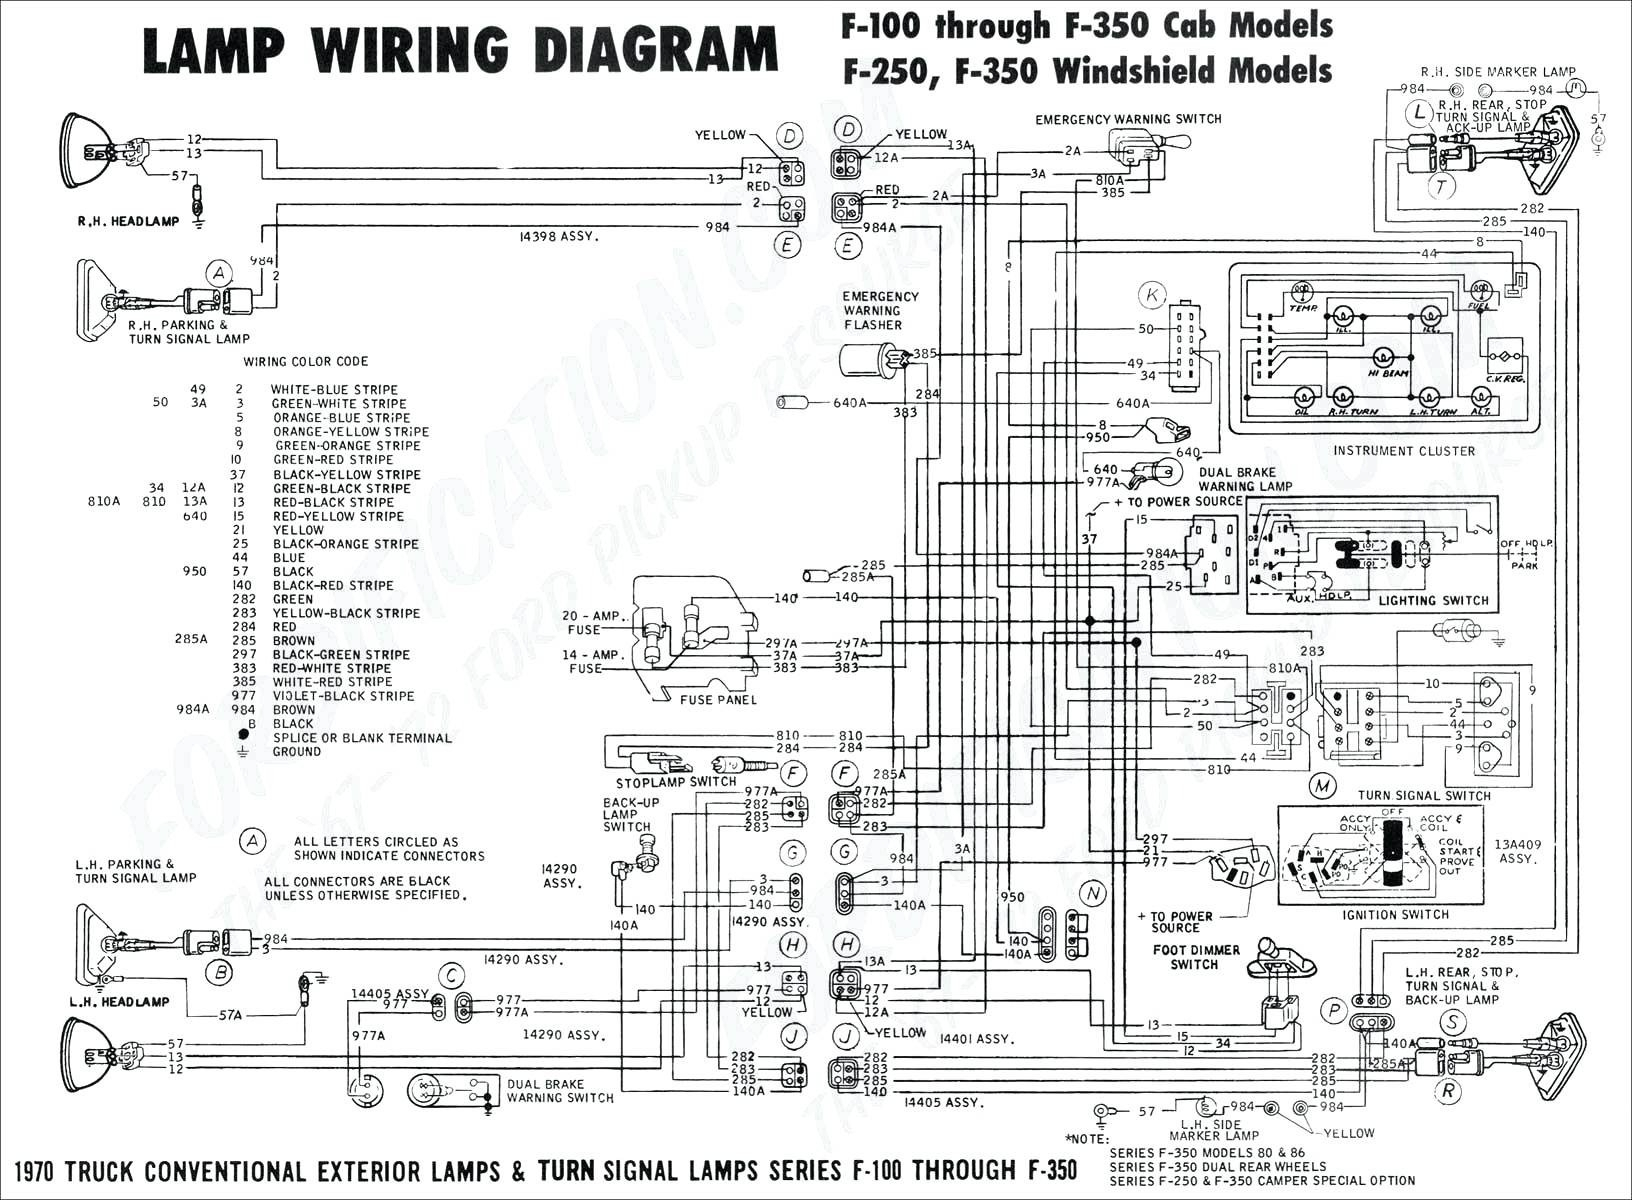 Indeeco Duct Heater Wiring Diagram